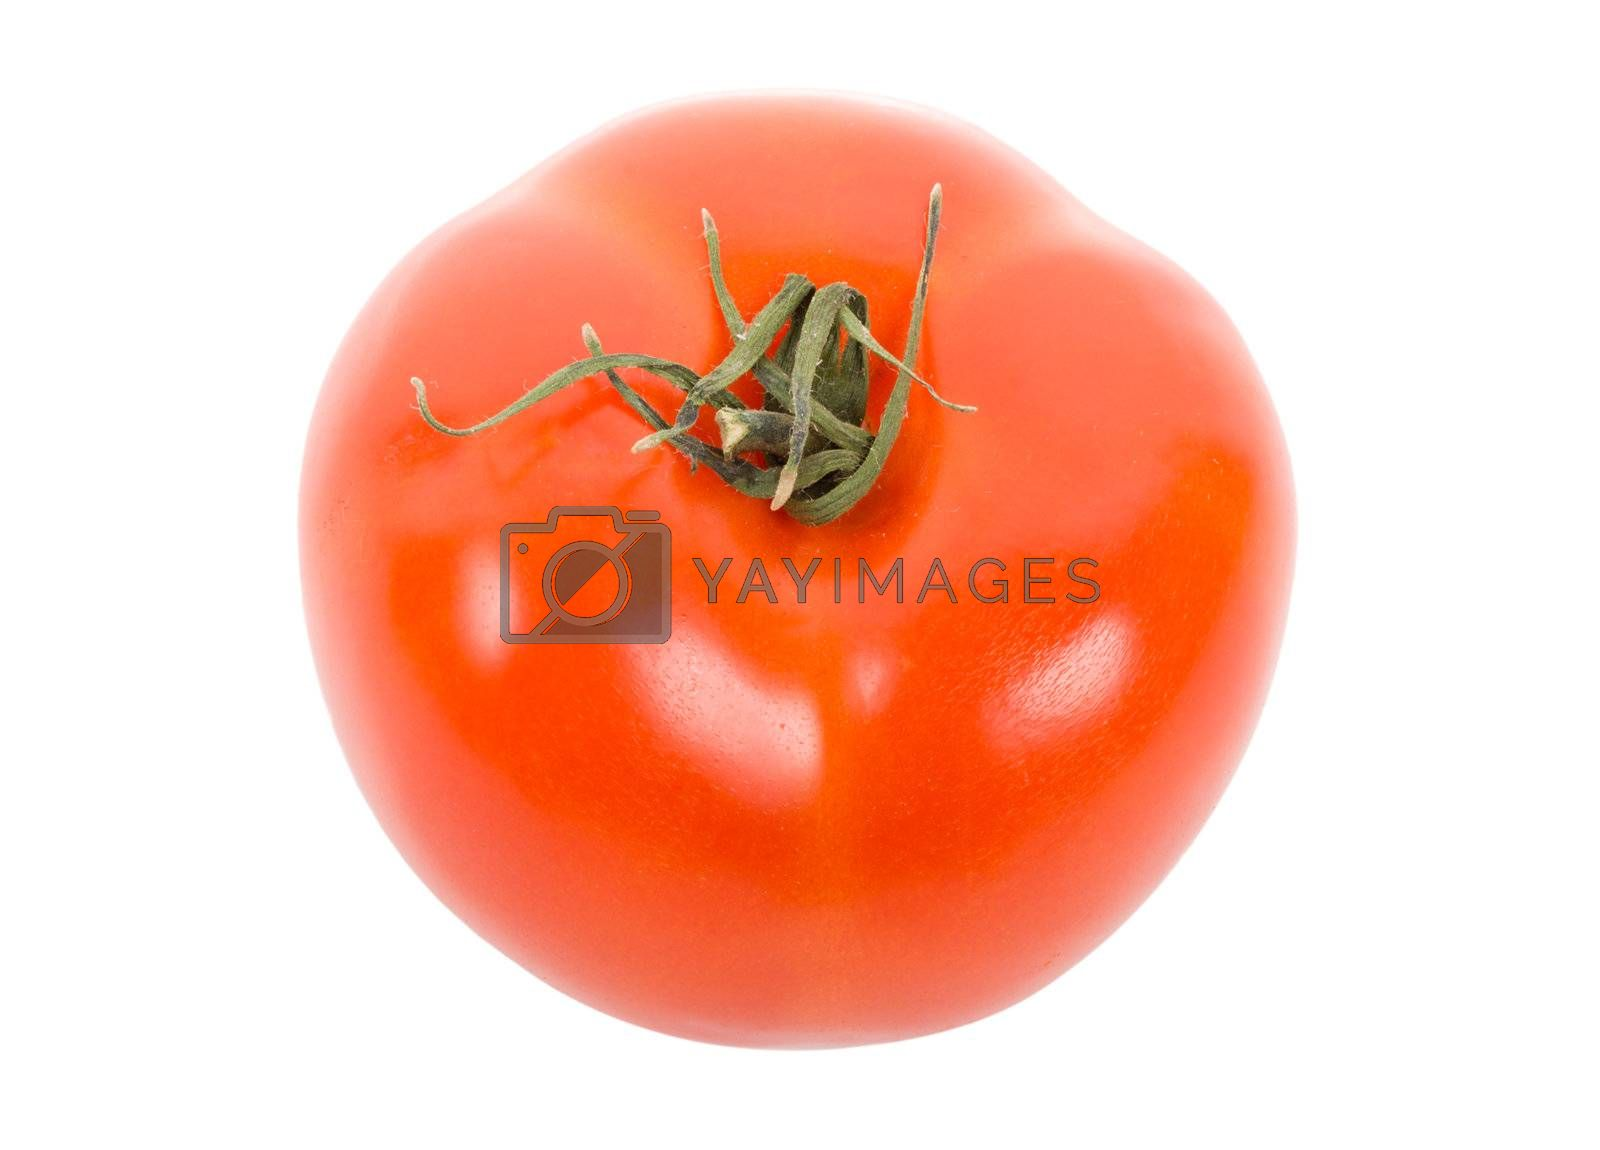 tomato view from above, isolated on white